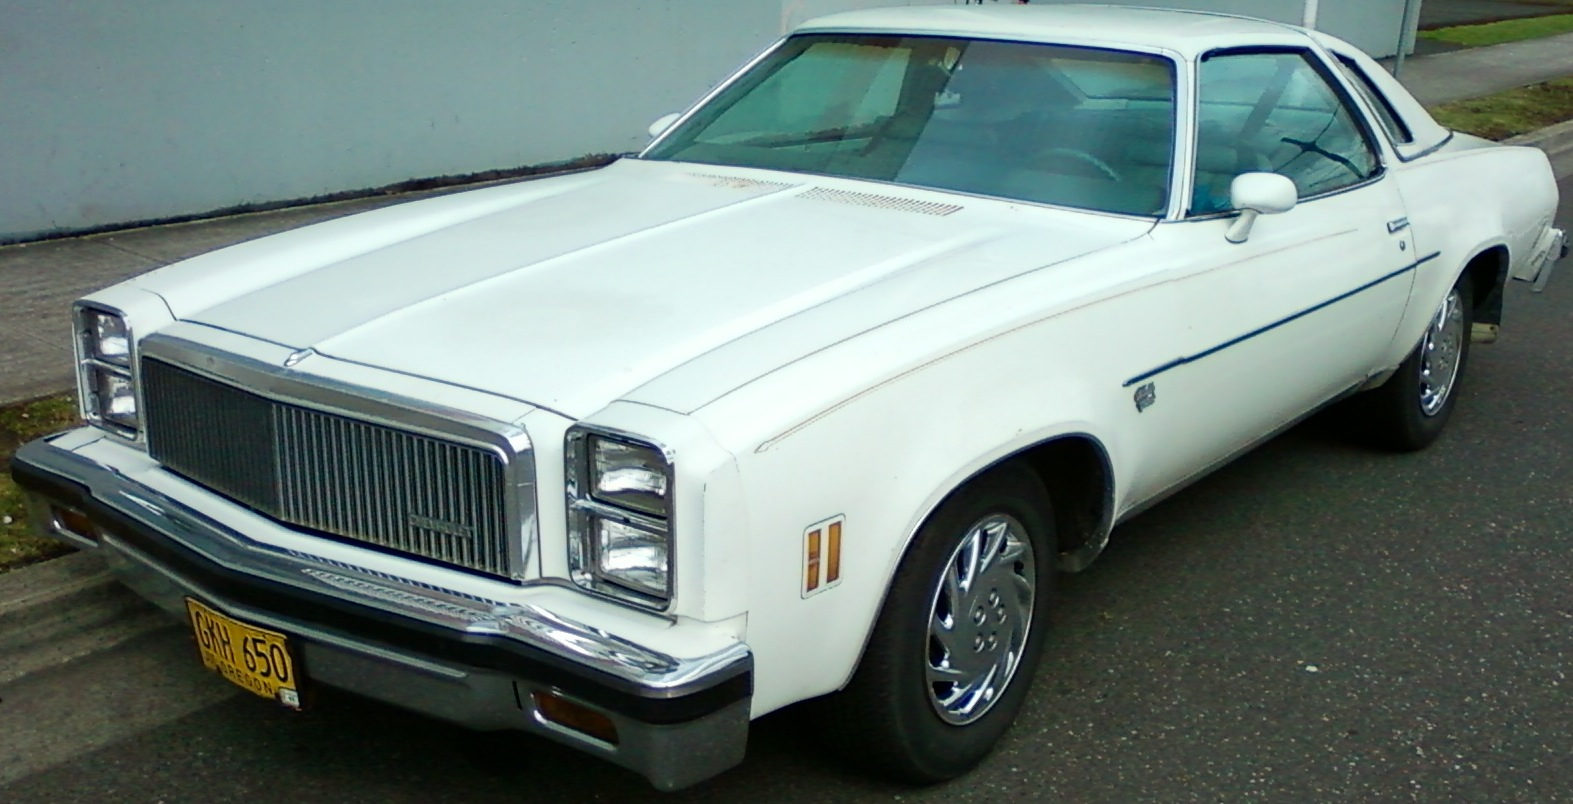 All Chevy 1977 chevrolet : 1977-chevrolet-malibu-classic - Muscle Cars Zone!